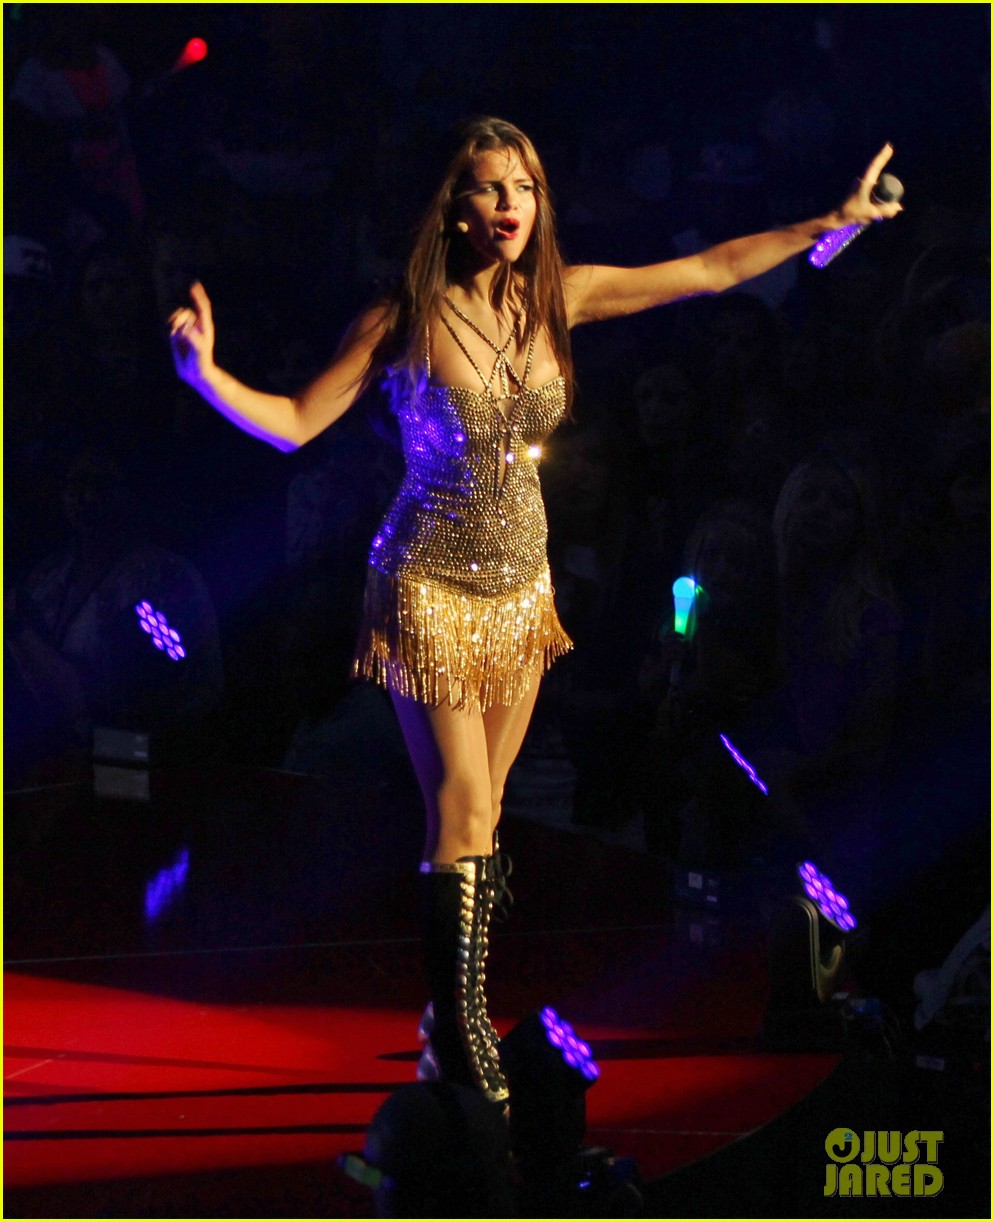 selena gomez stars dance opening night tour pics 09